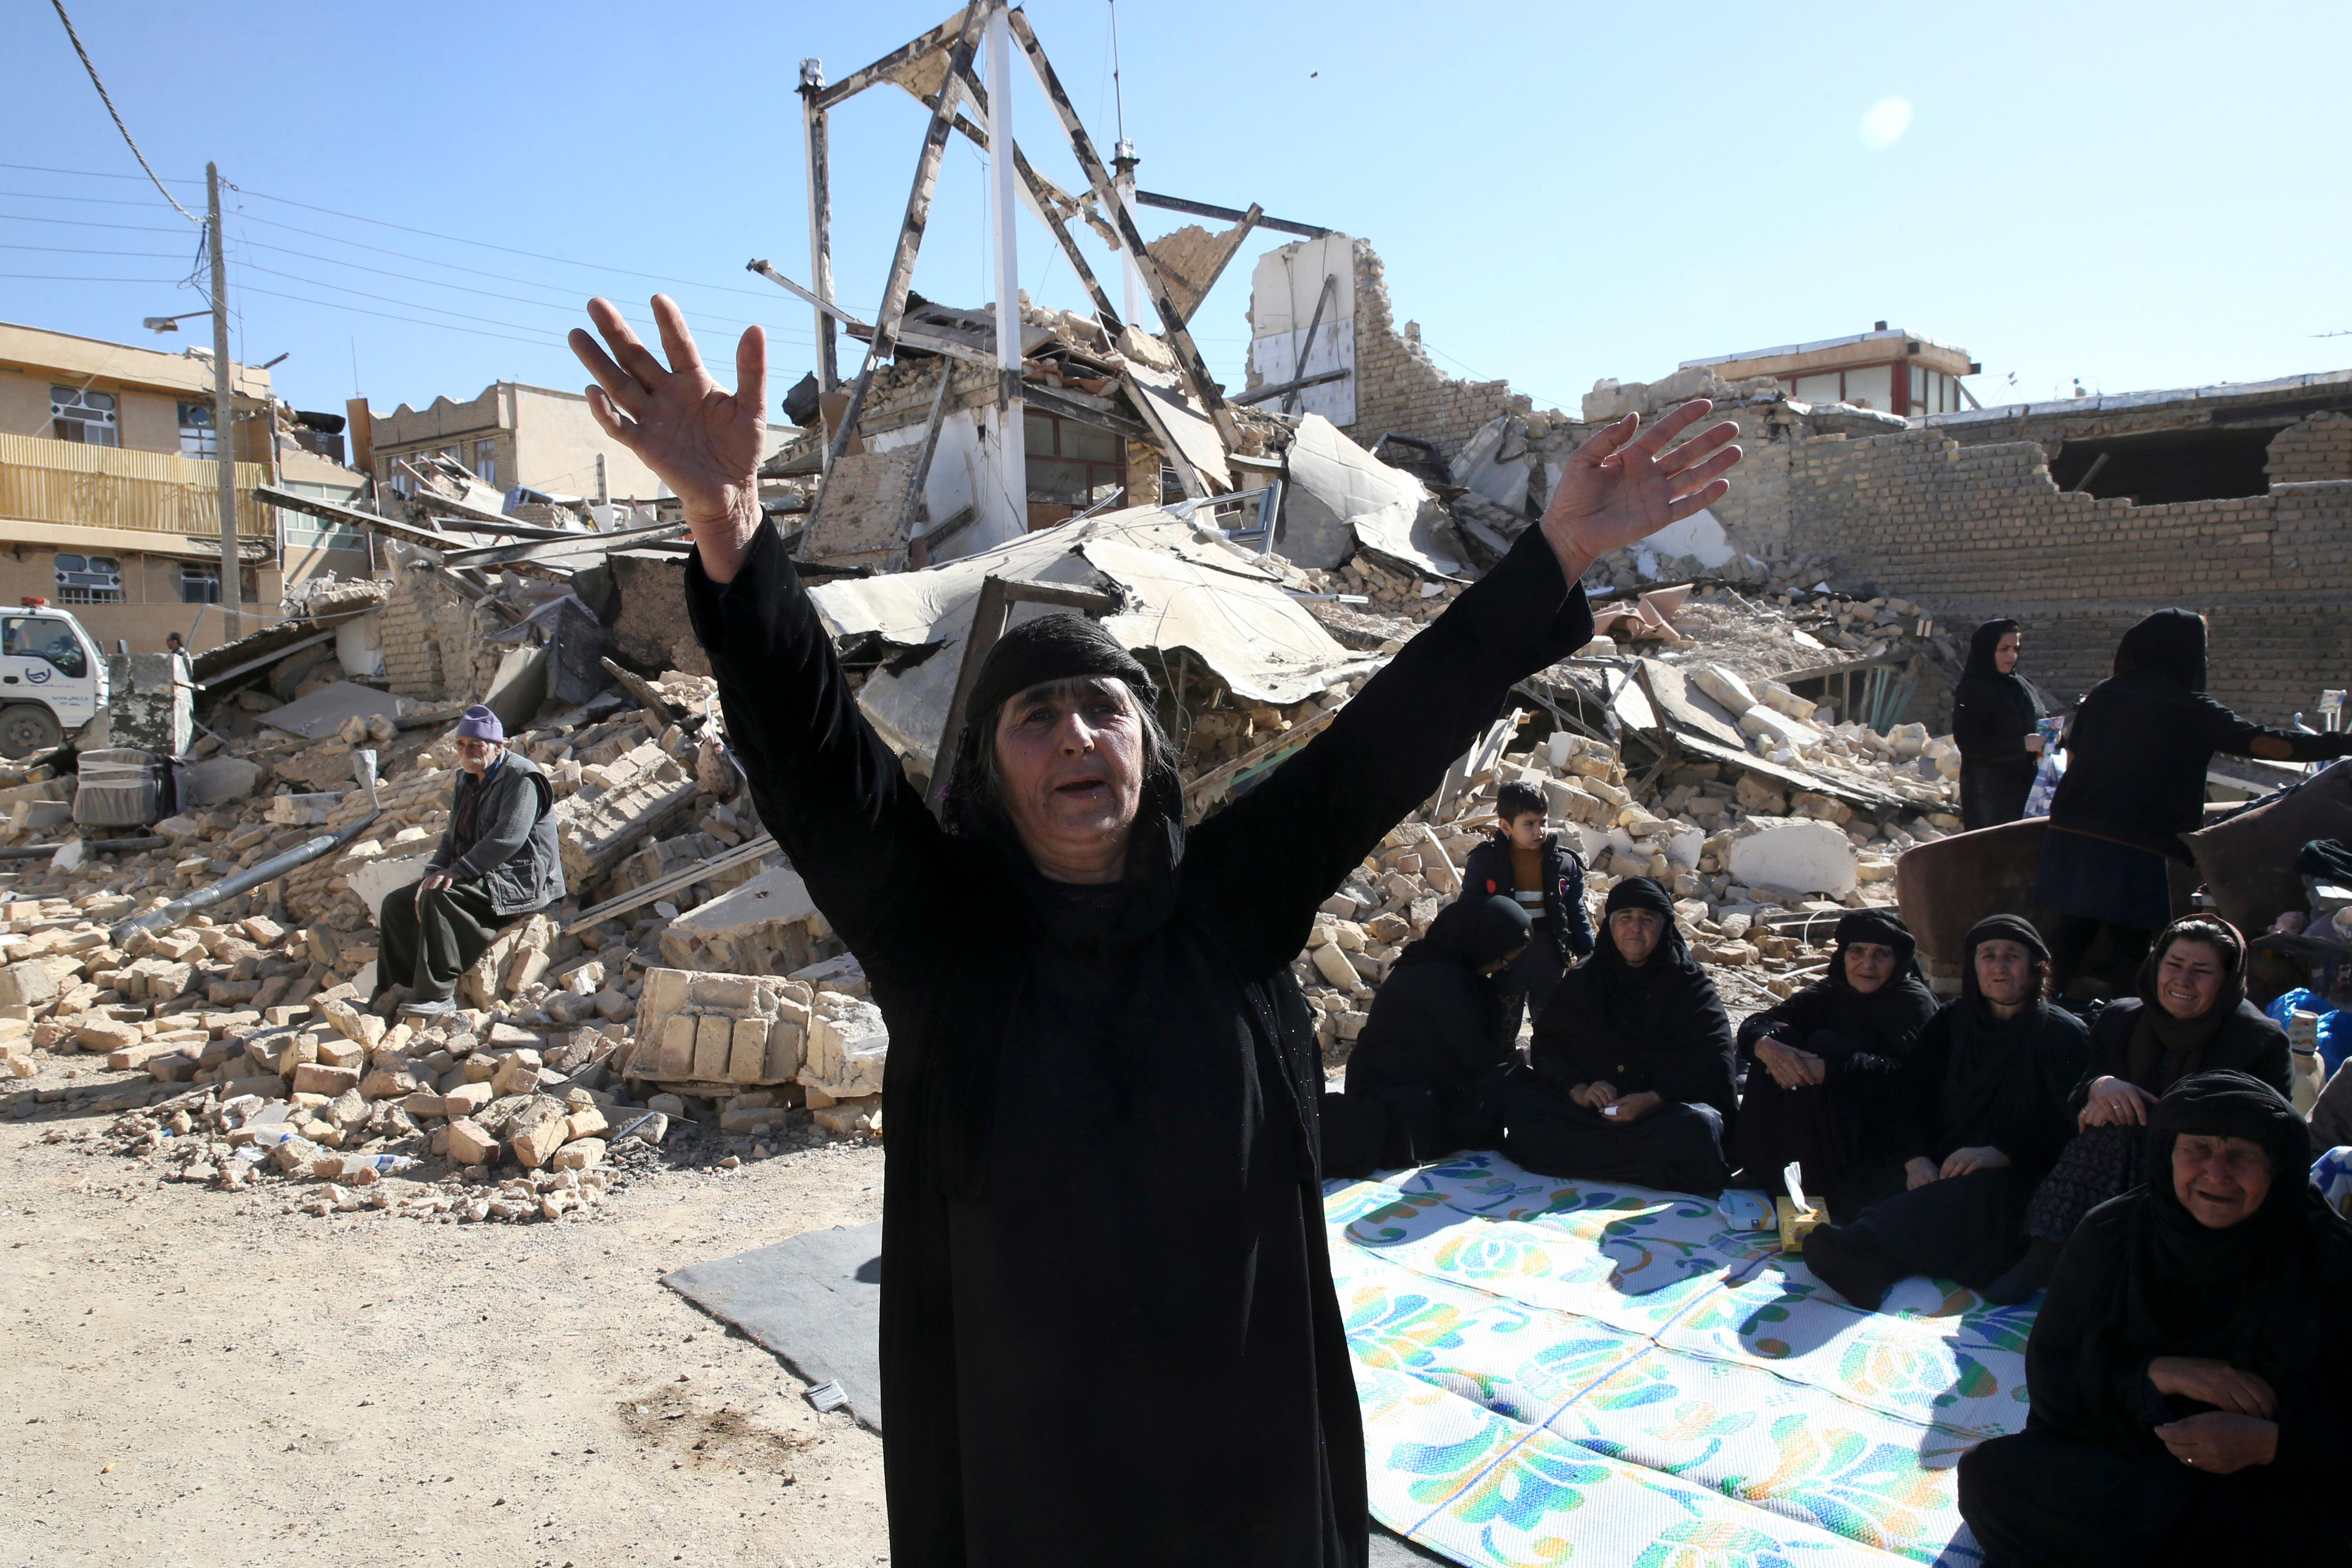 A woman mourns at an earthquake site in Sarpol-e-Zahab in western Iran, Tuesday, Nov. 14, 2017. Rescuers are digging through the debris of buildings felled by the Sunday earthquake in the border region of Iran and Iraq. (AP Photo/Vahid Salemi)